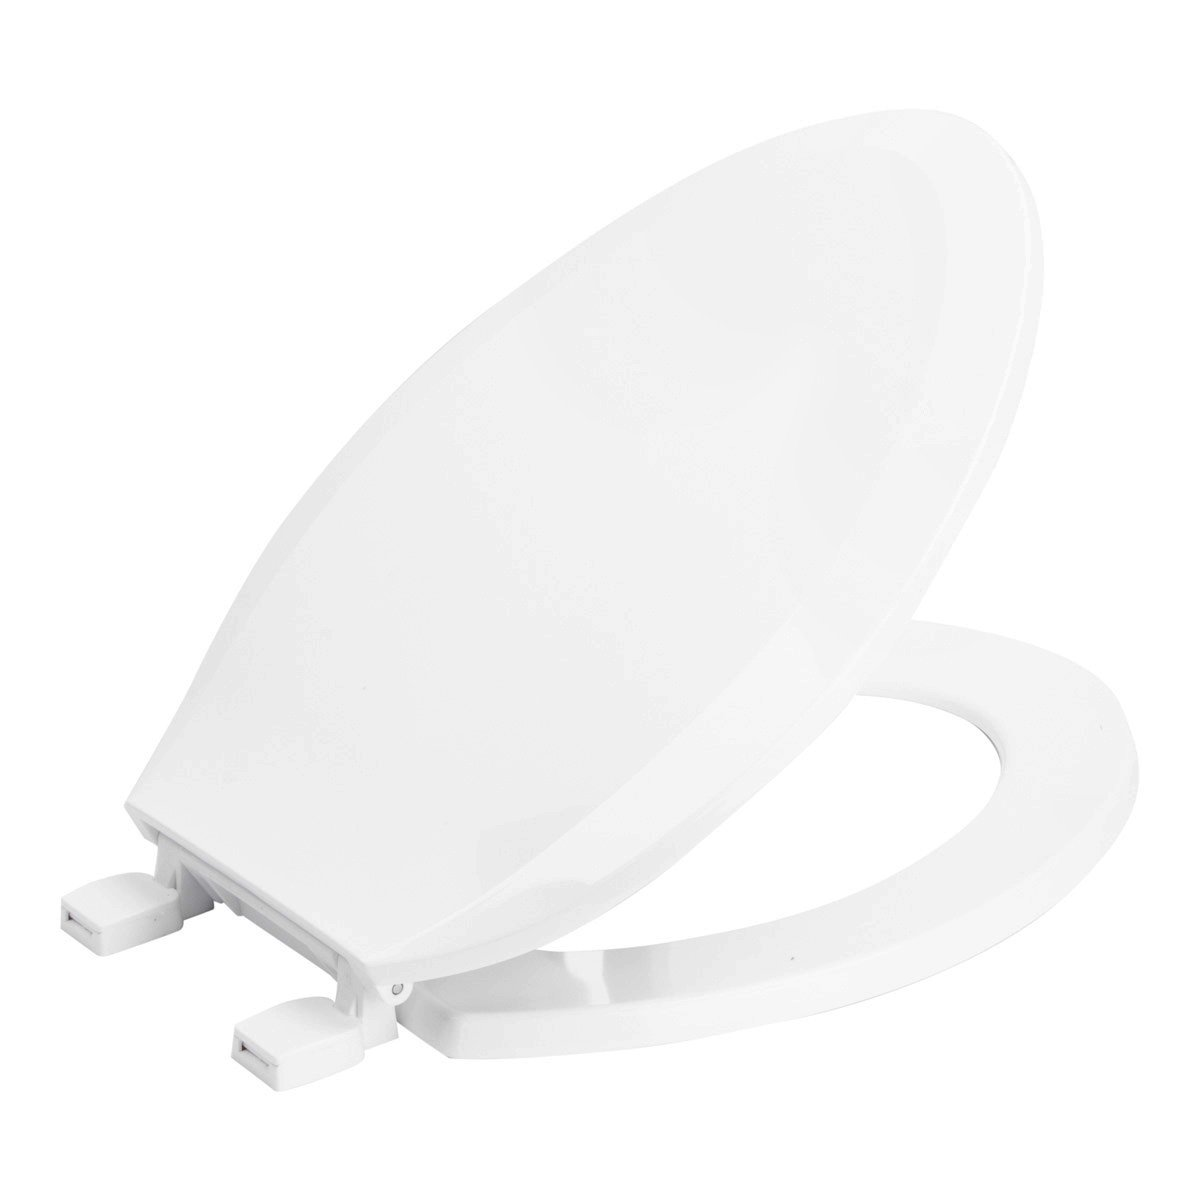 Elongated White Plastic Toilet Seat and Lid with Quick Release Hinges for Easy cleaning |Elongated shape | Heavy duty Plastic | White LDR